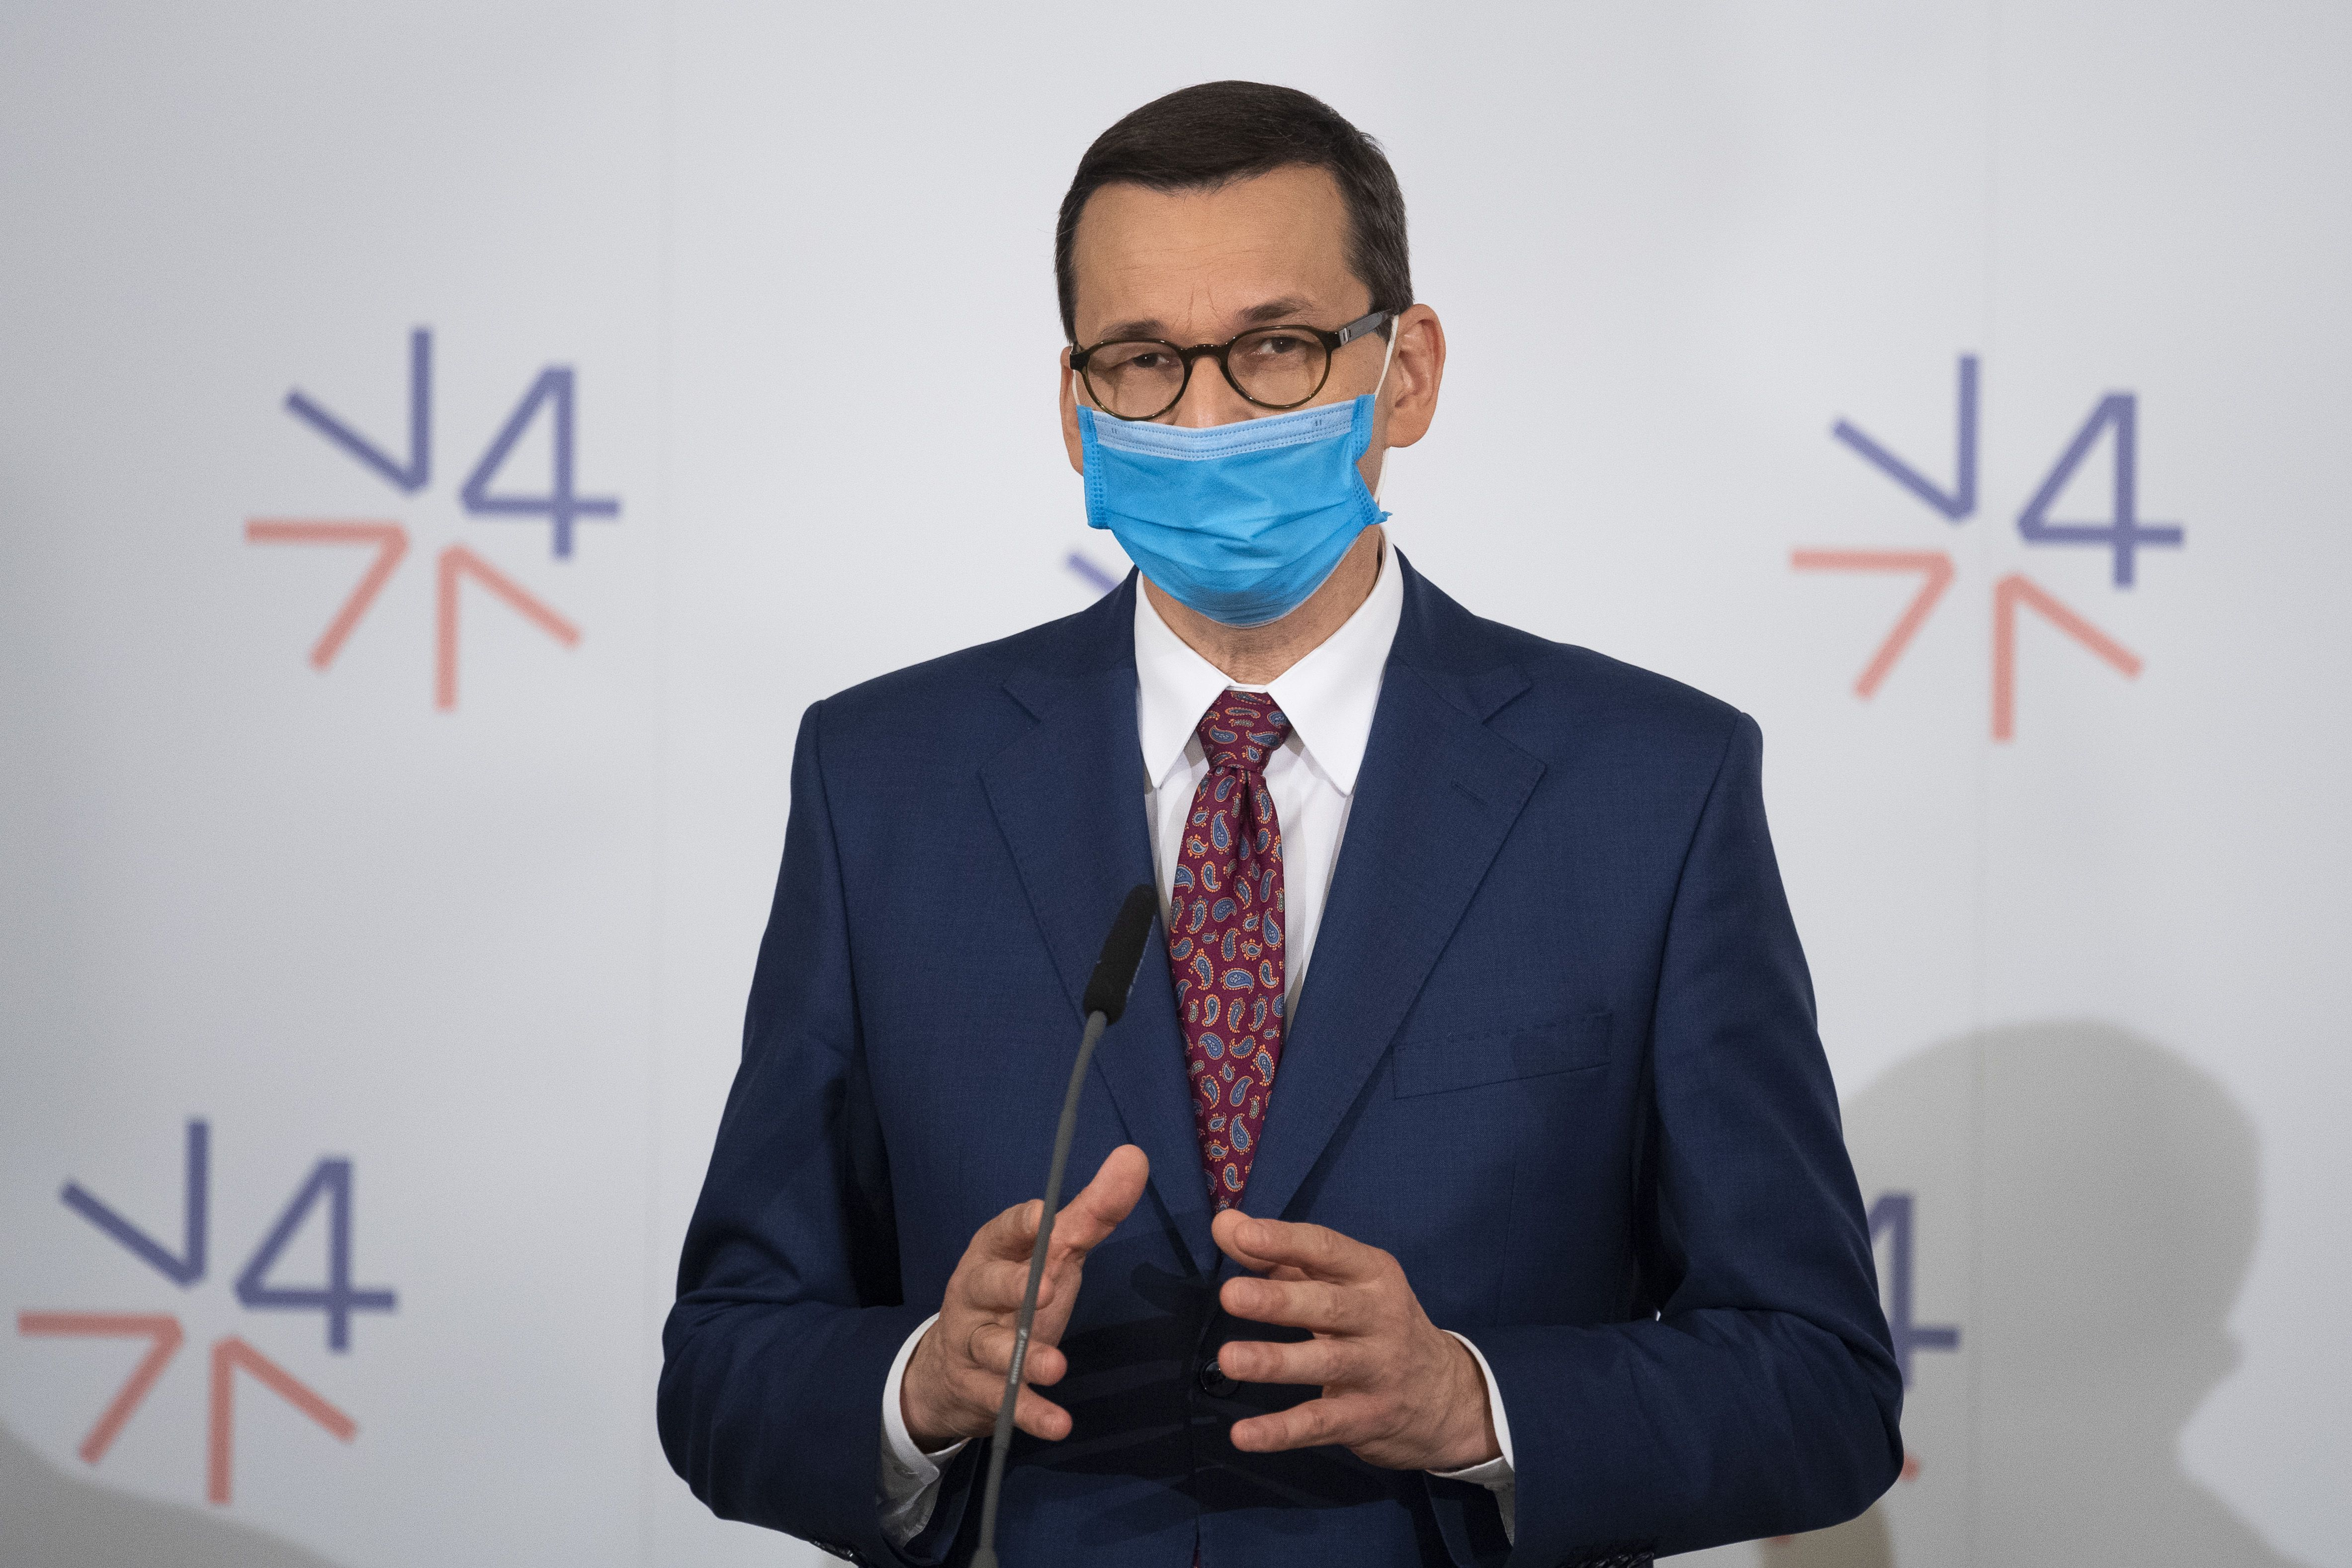 11/06/2020 11 June 2020, Czech Republic, Lednice: Poland's Prime Minister Mateusz Morawiecki wearing a face mask speaks during a press conference after the summit of the Visegrad Group (V4) countries at Lednice Chateau. Photo: Jaroslav Novák/TASR/dpa POLITICA INTERNACIONAL Jaroslav Novák/TASR/dpa